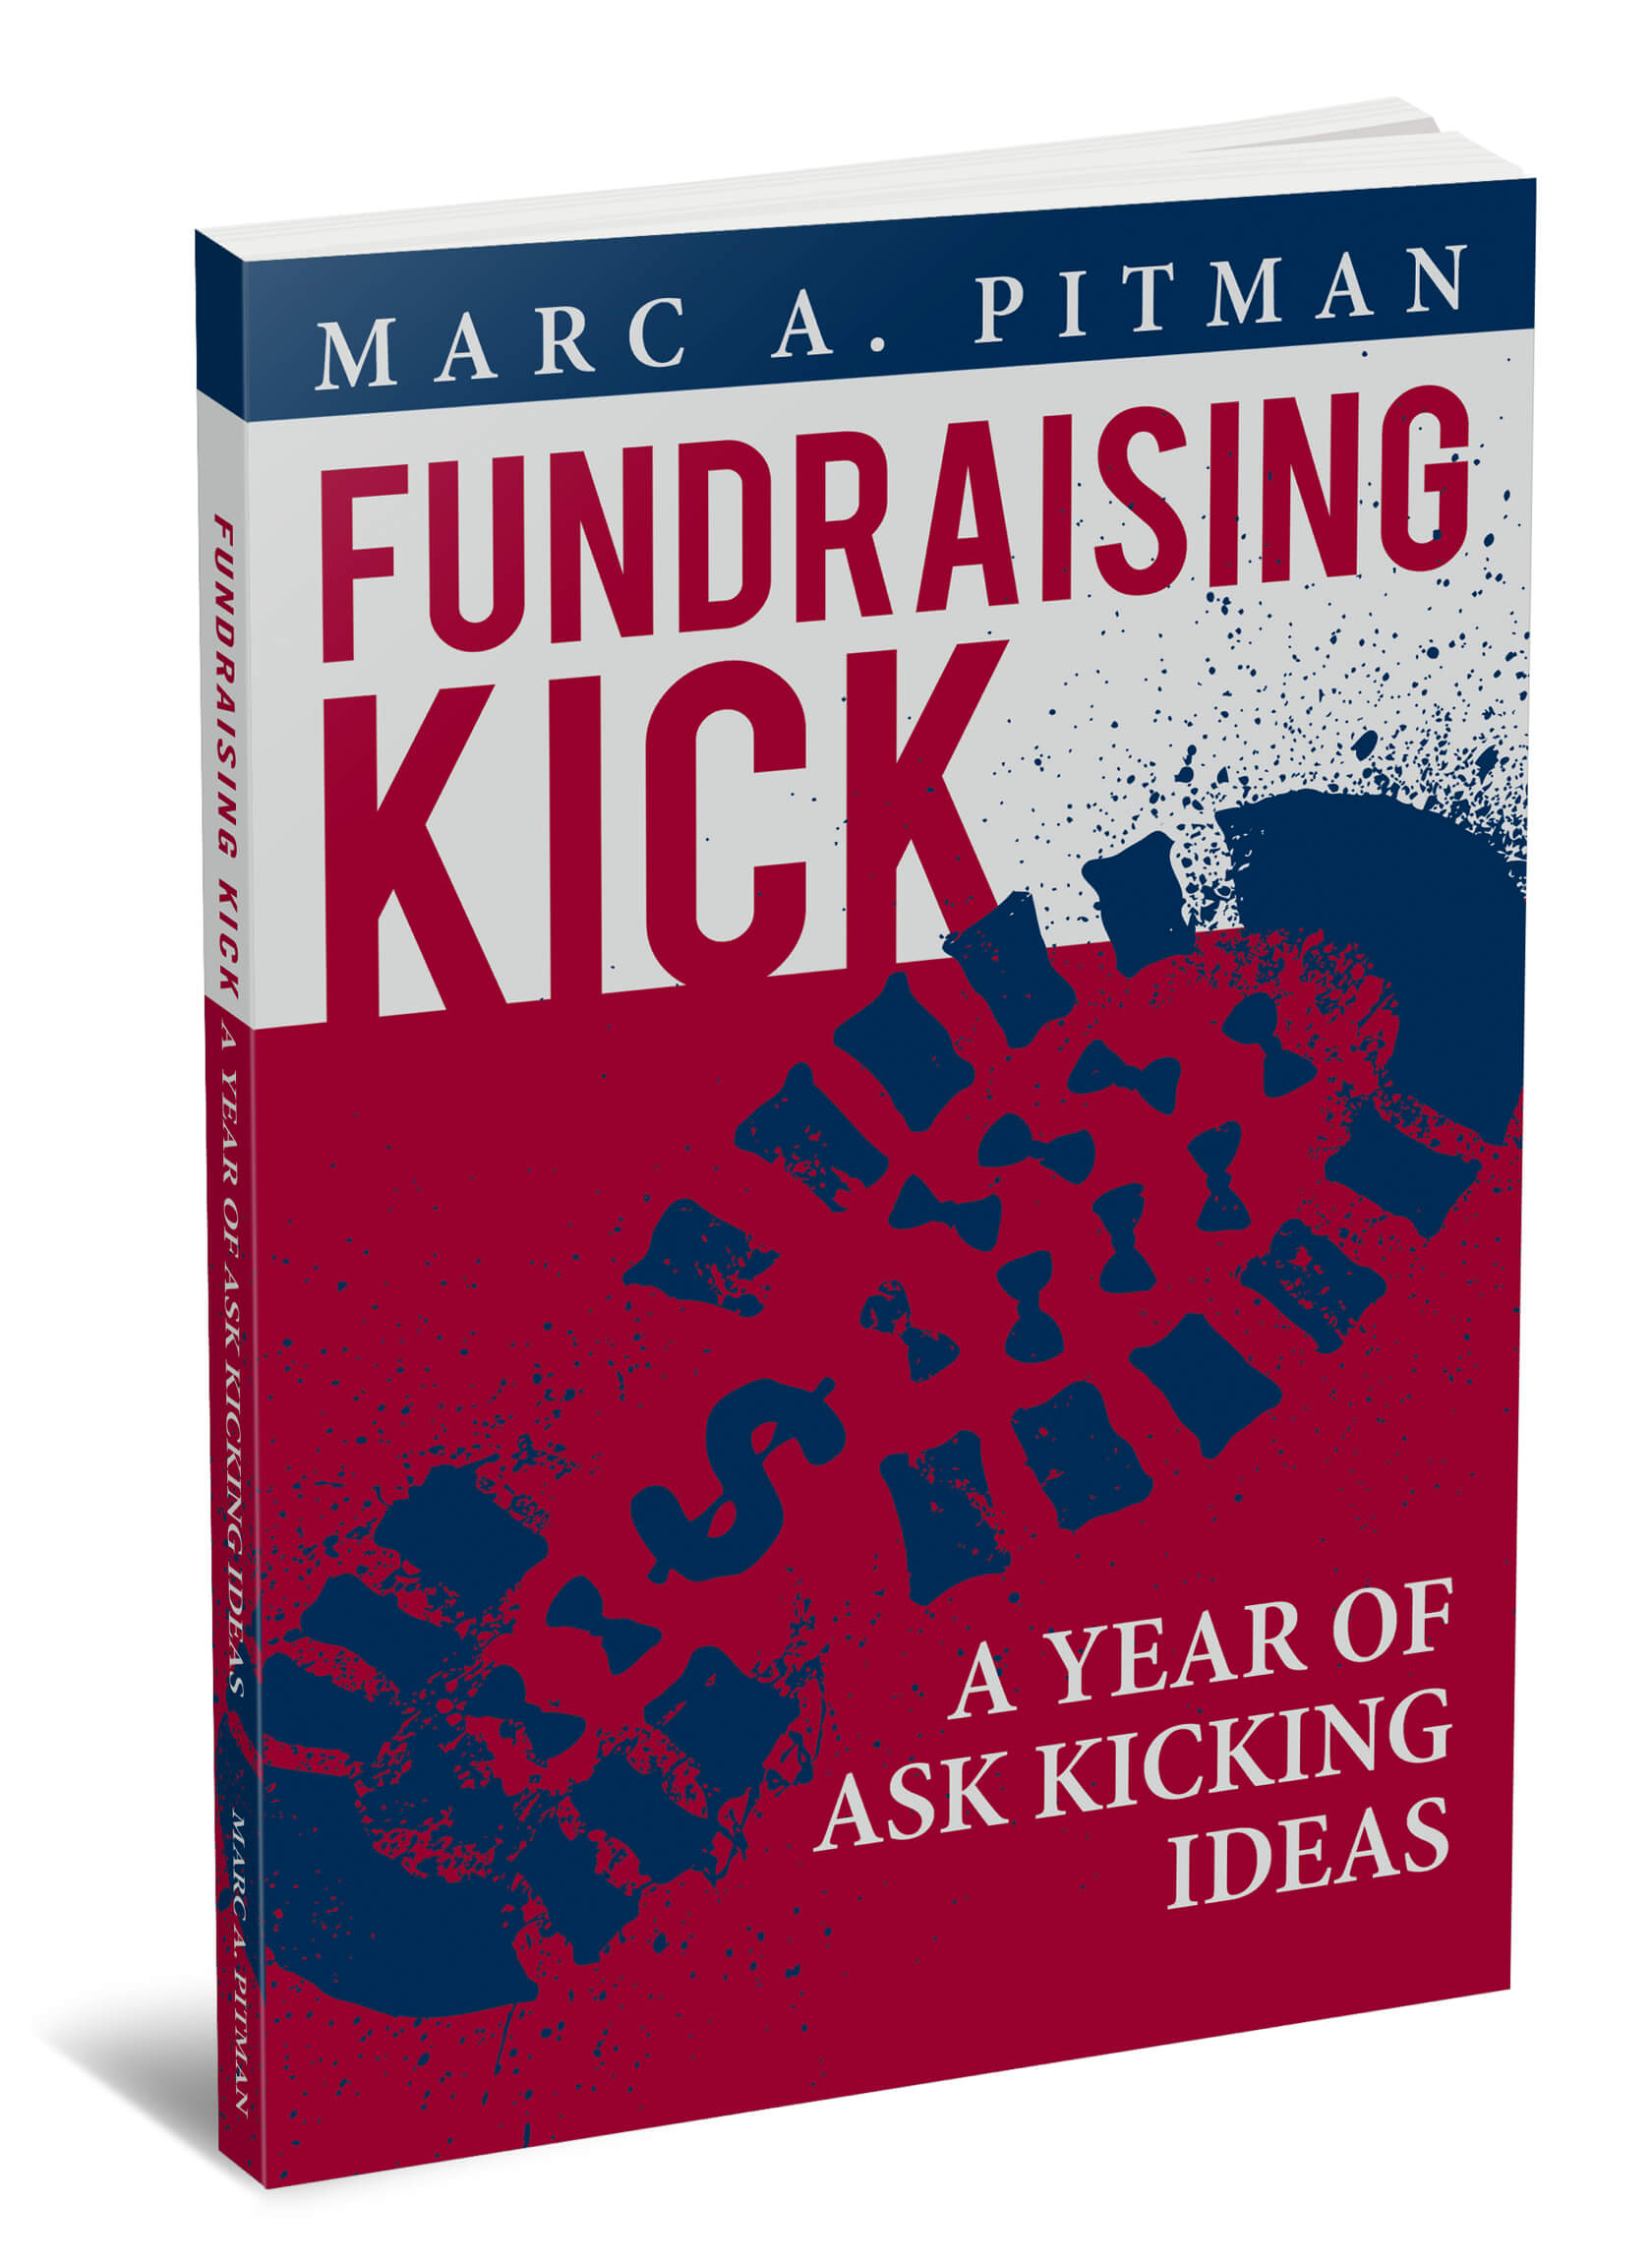 Fundraising Kick Book Cover